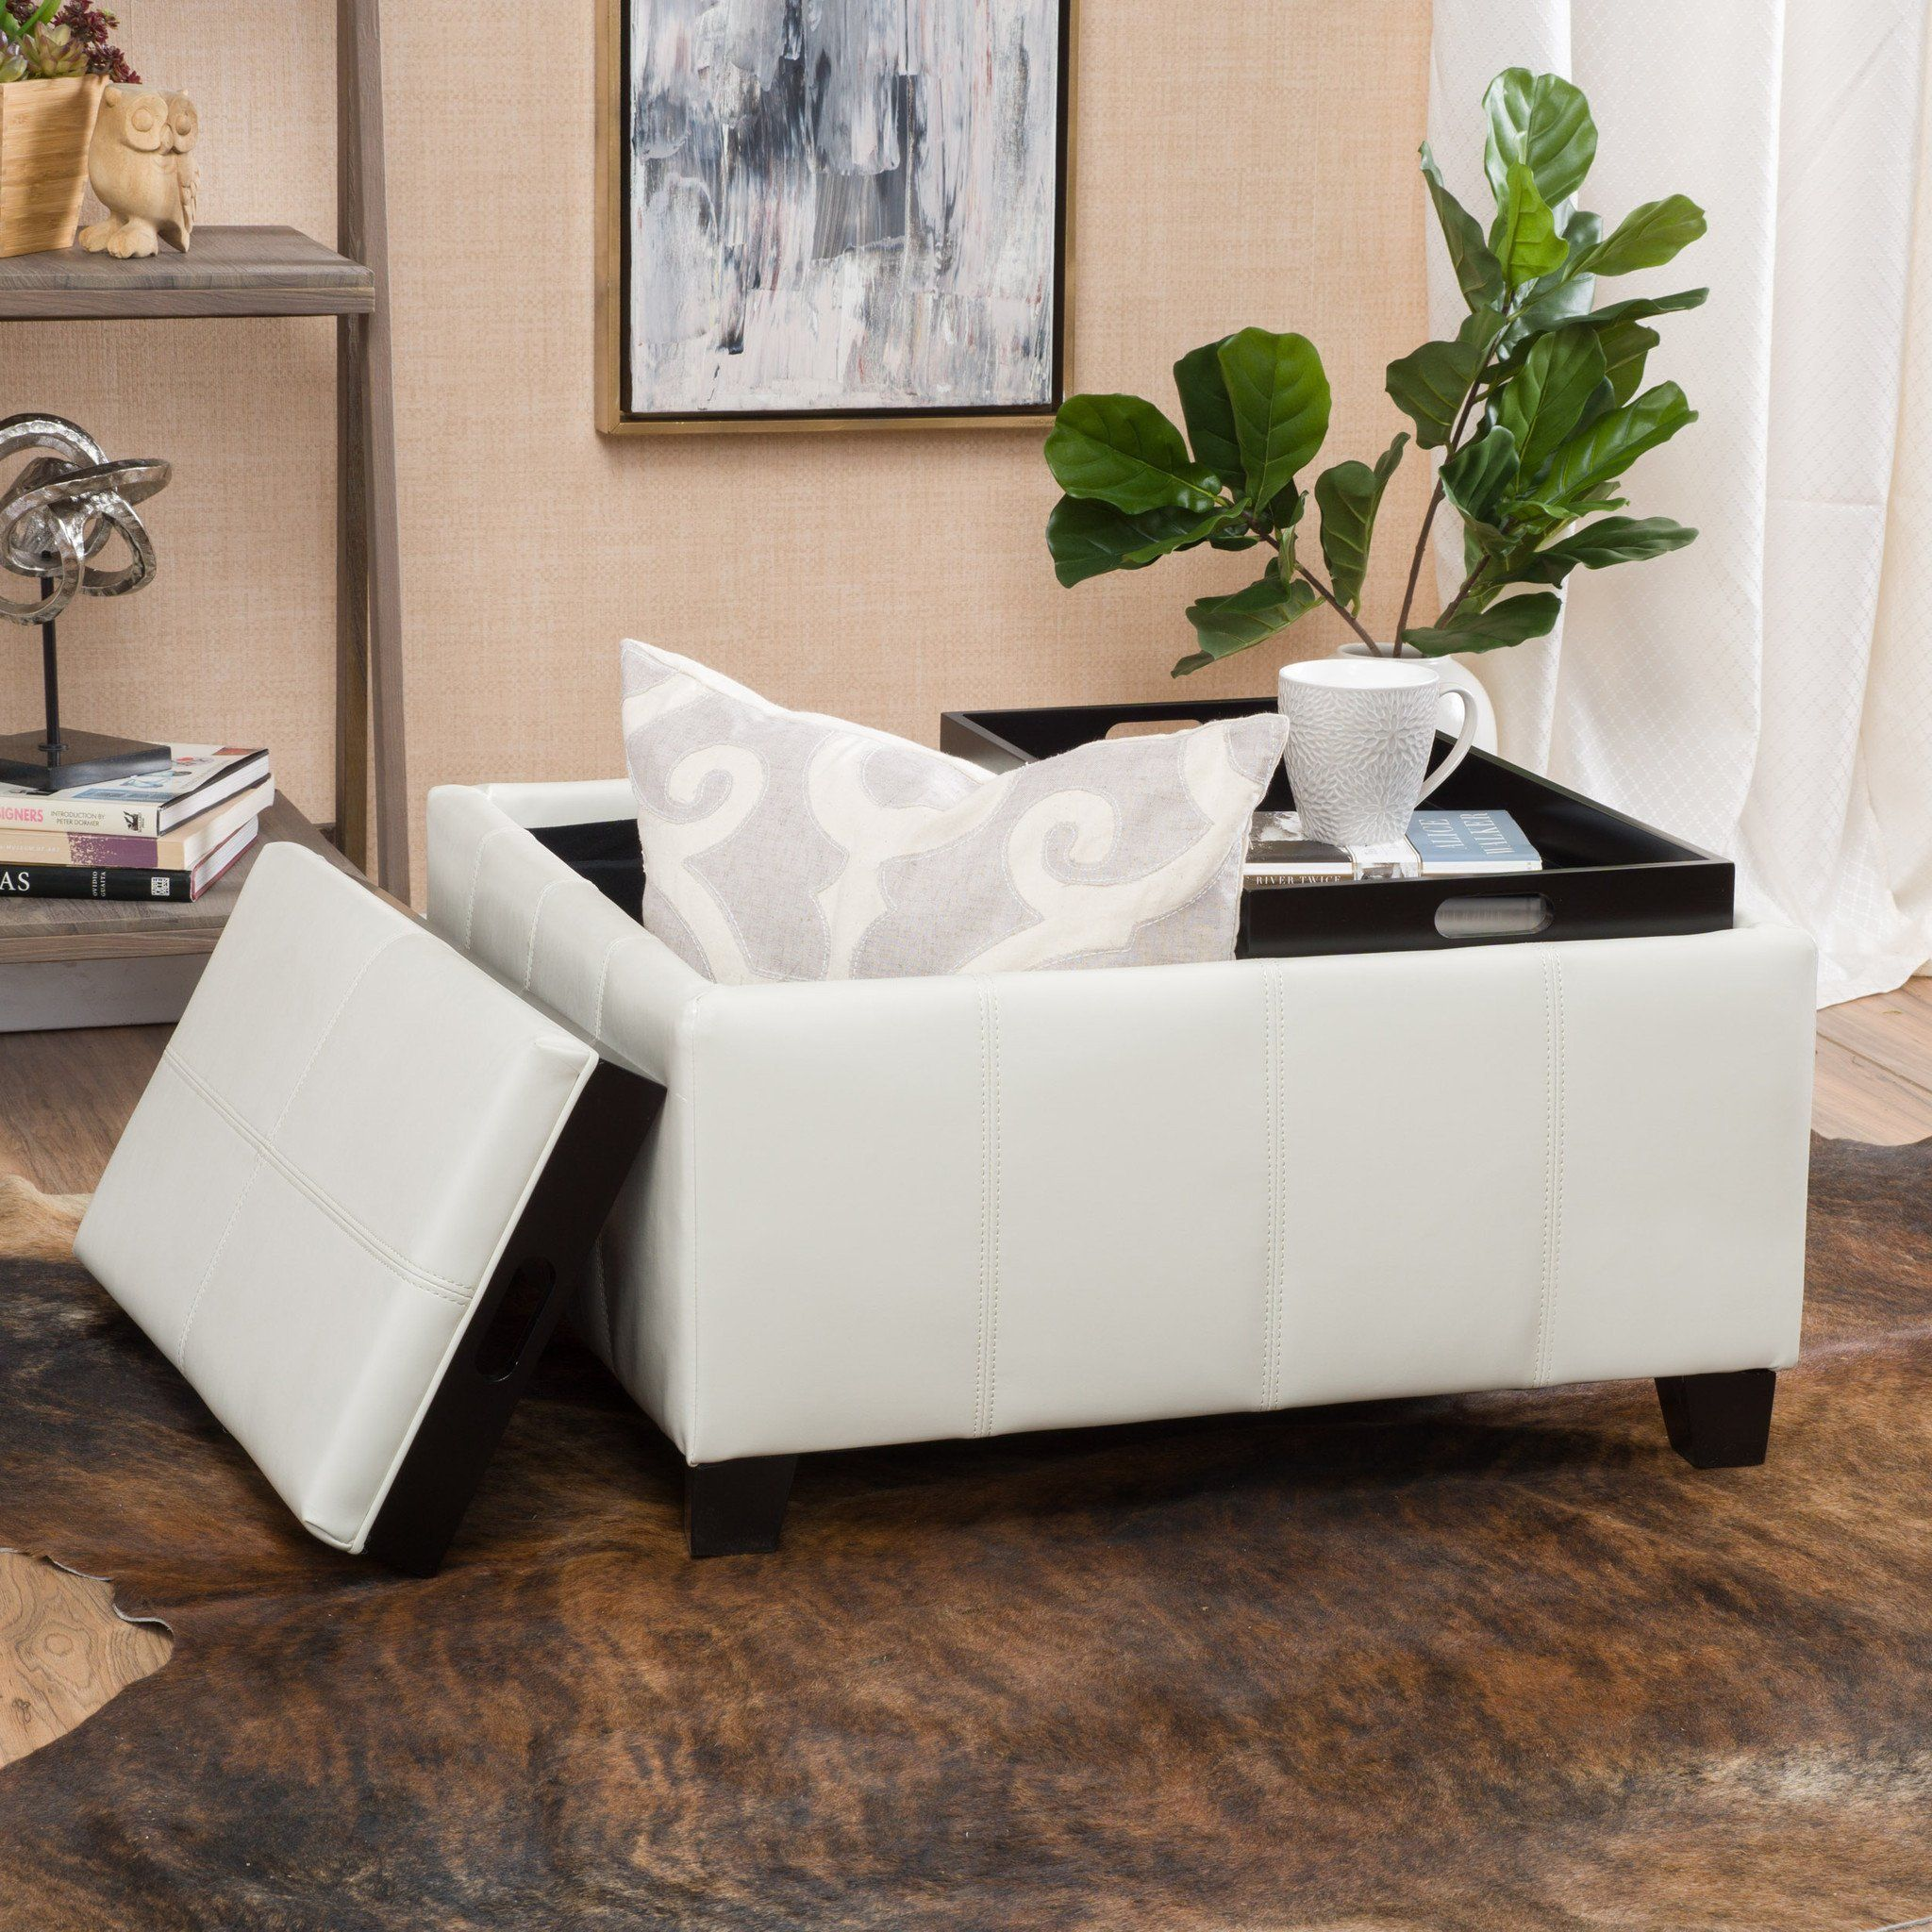 Justin 2-Tray-Top Ivory Leather Ottoman Coffee Table w/ Storage ...